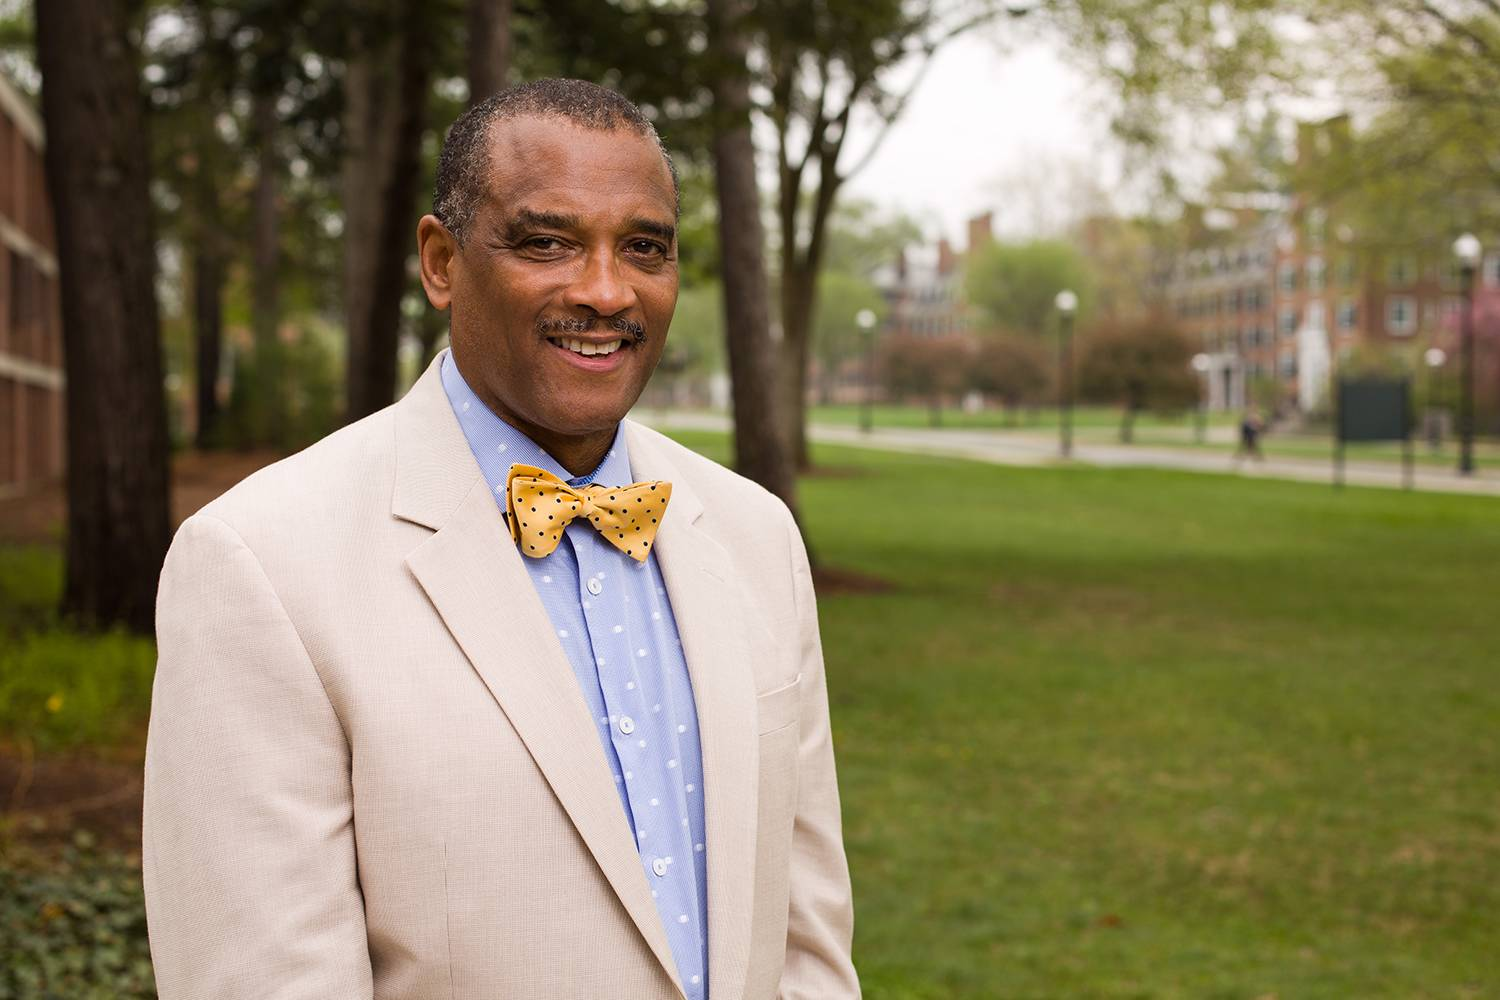 Frederick McKinney, managing director of Tuck minority business programs